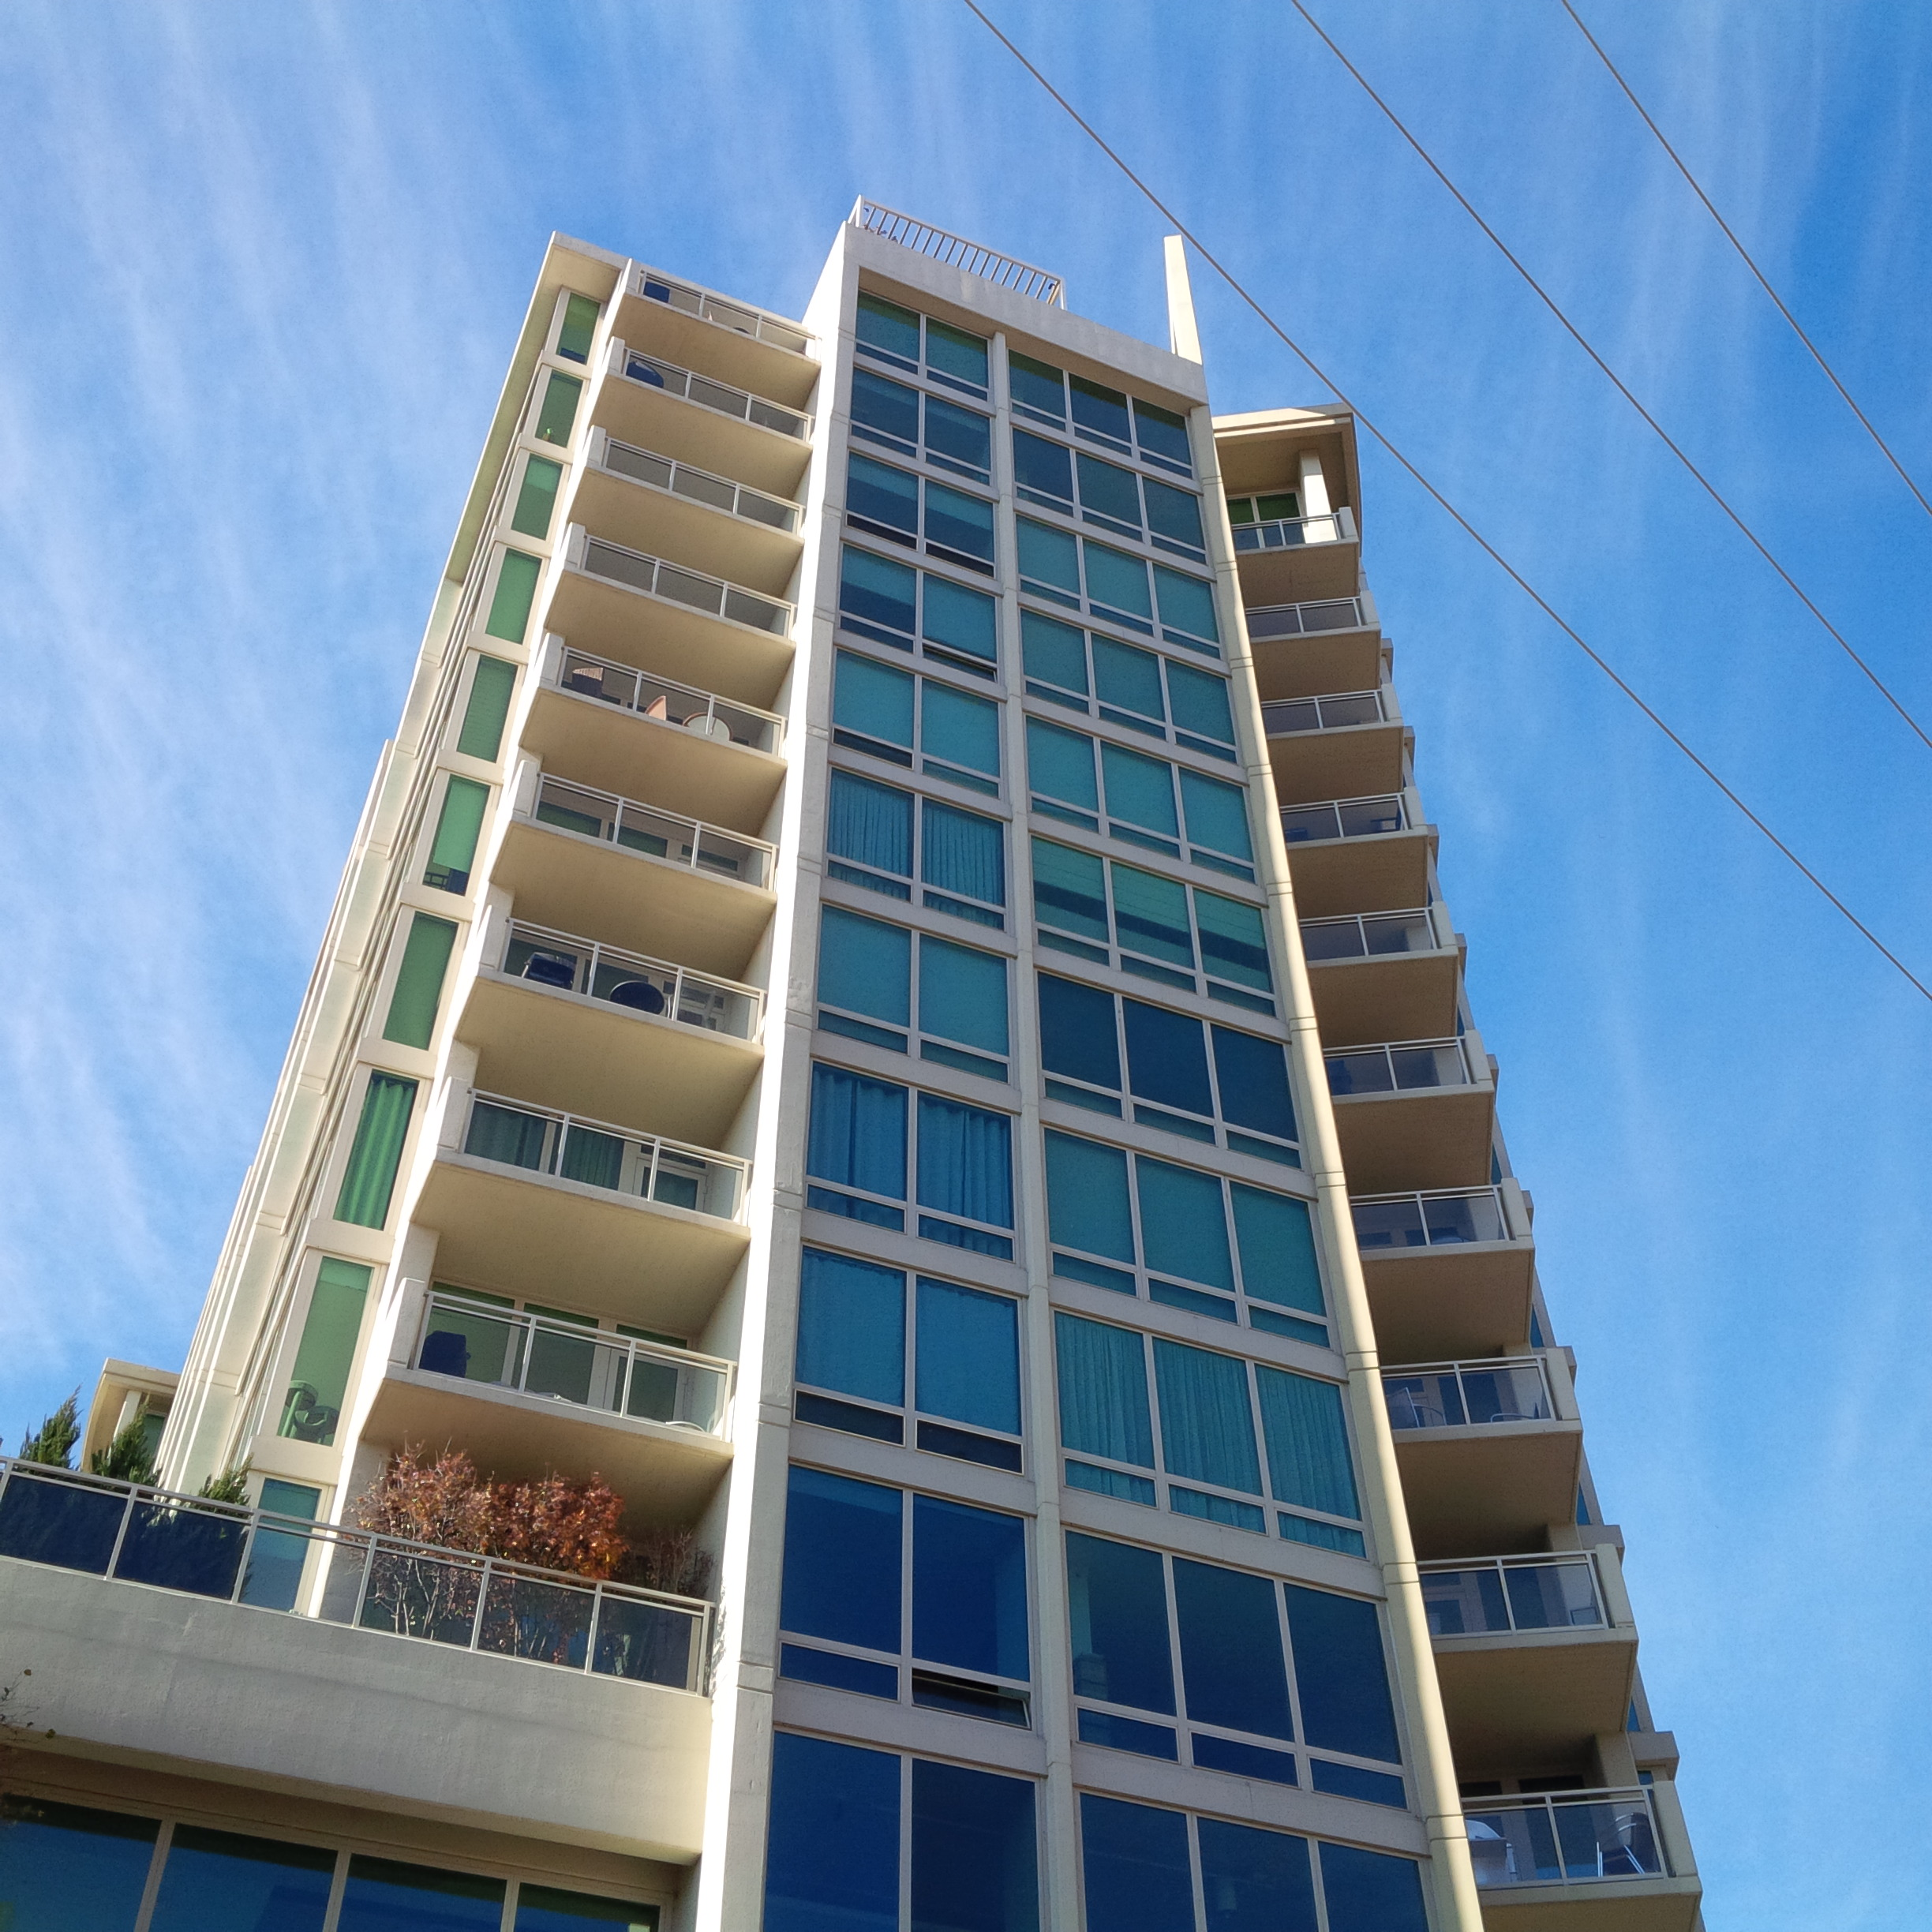 3 Bedroom Condos For Sale In Evanston Illinois